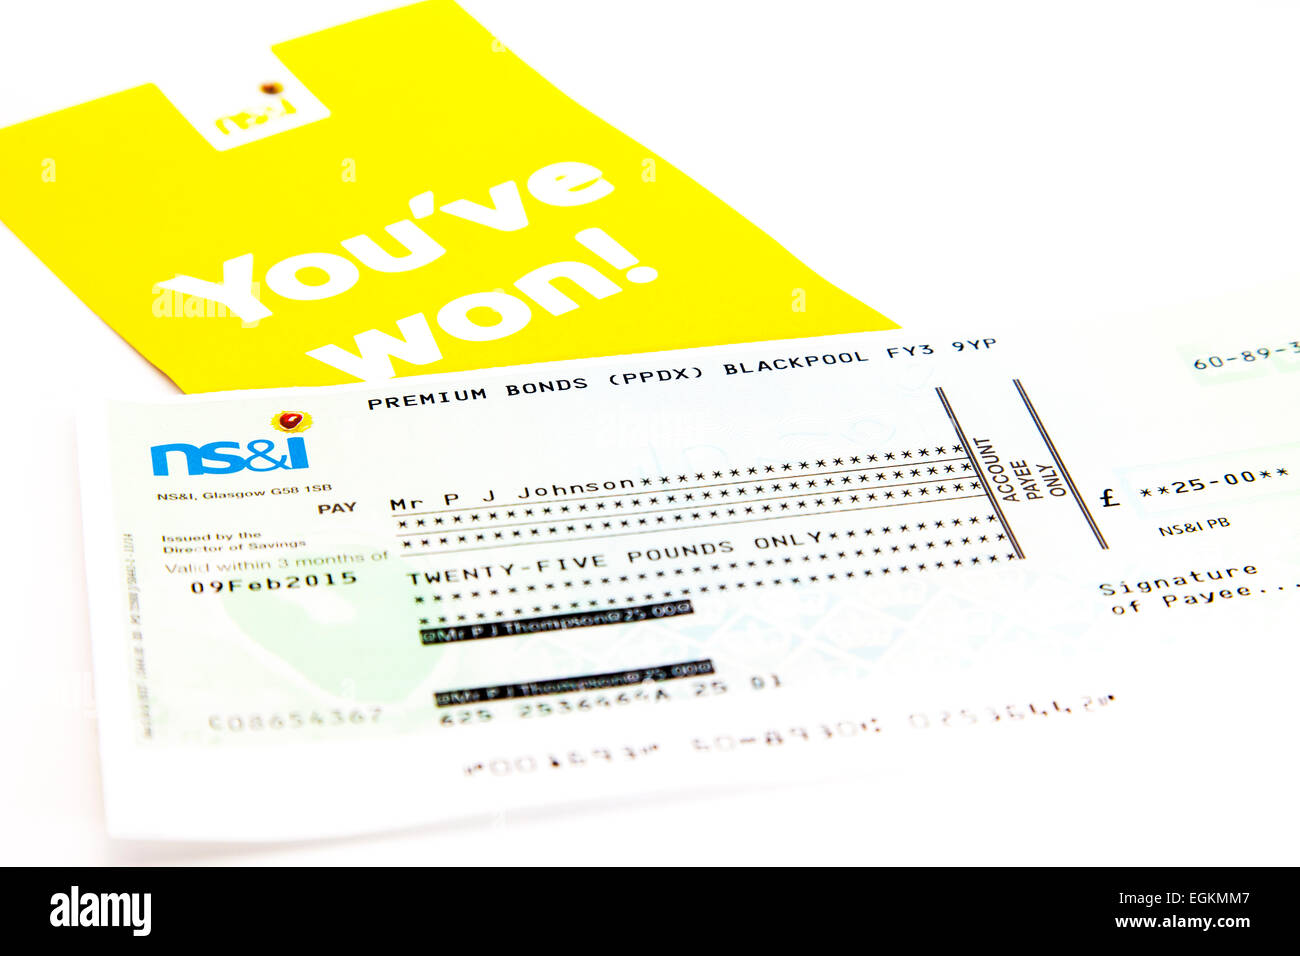 Premium bond win bonds winner cheque winners check national savings & investments investment payment - Stock Image